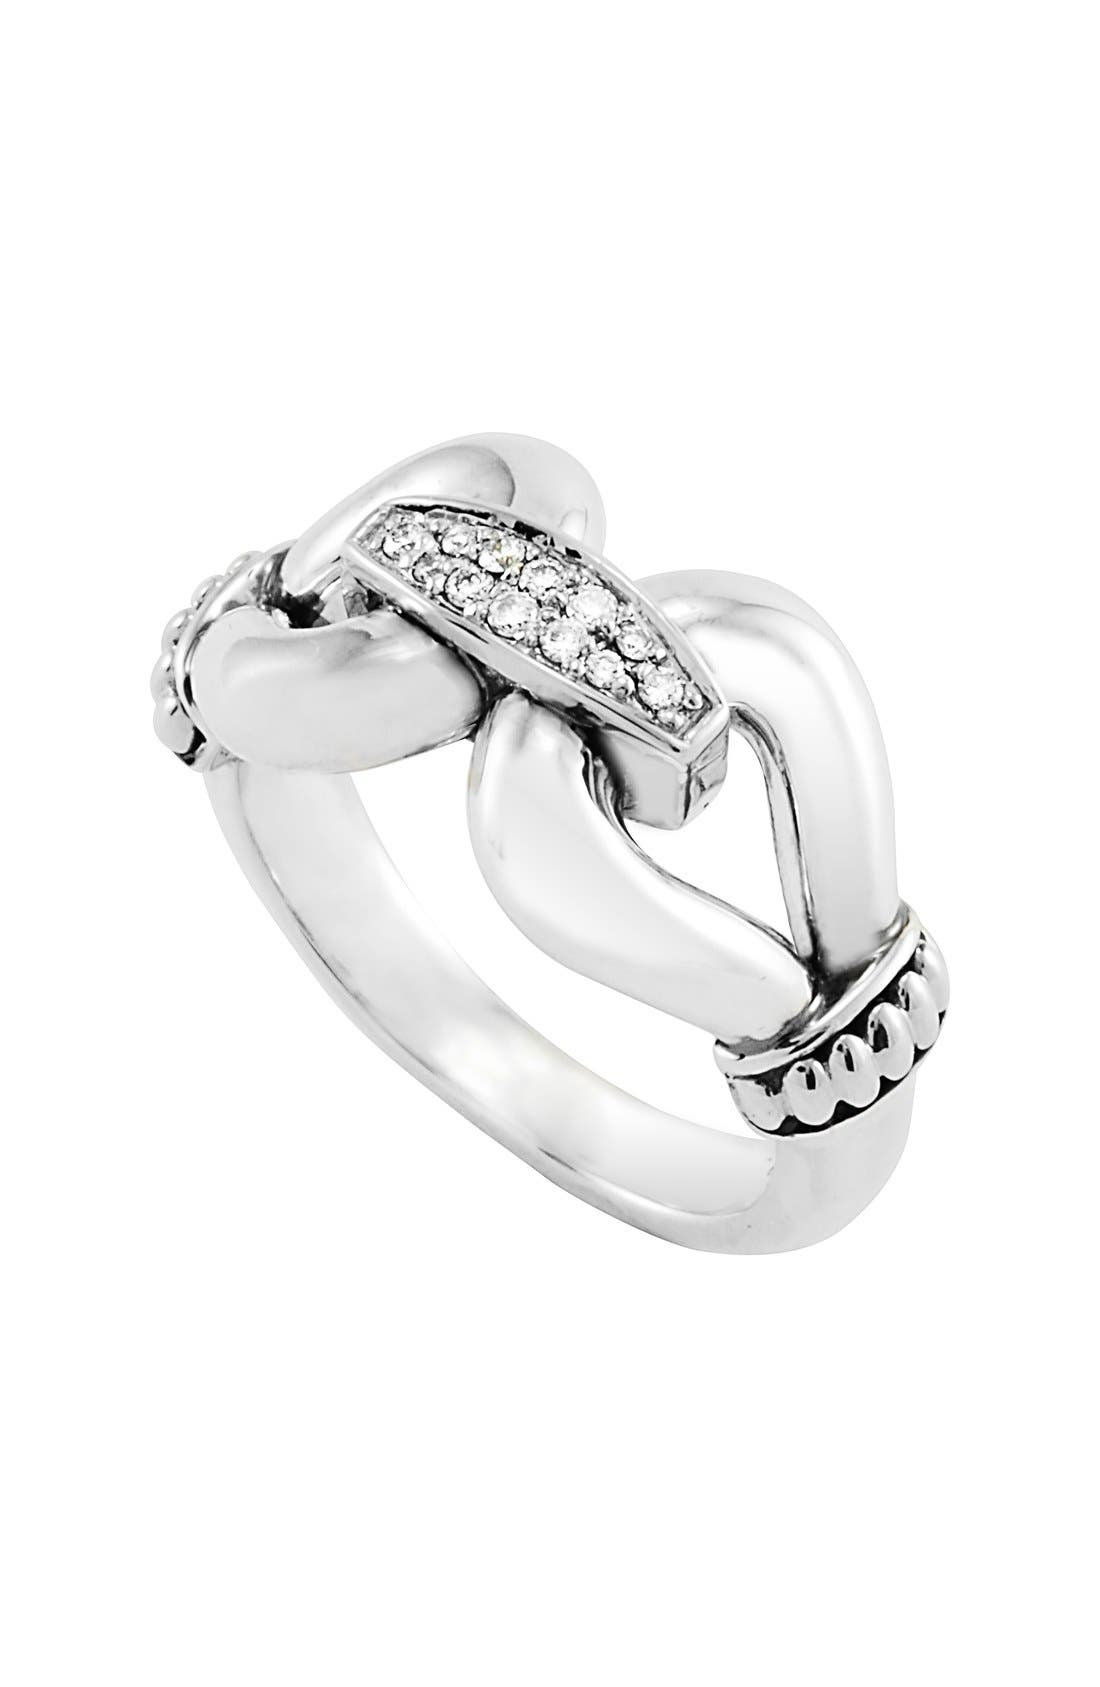 'Derby' Large Diamond Ring,                         Main,                         color, Sterling Silver